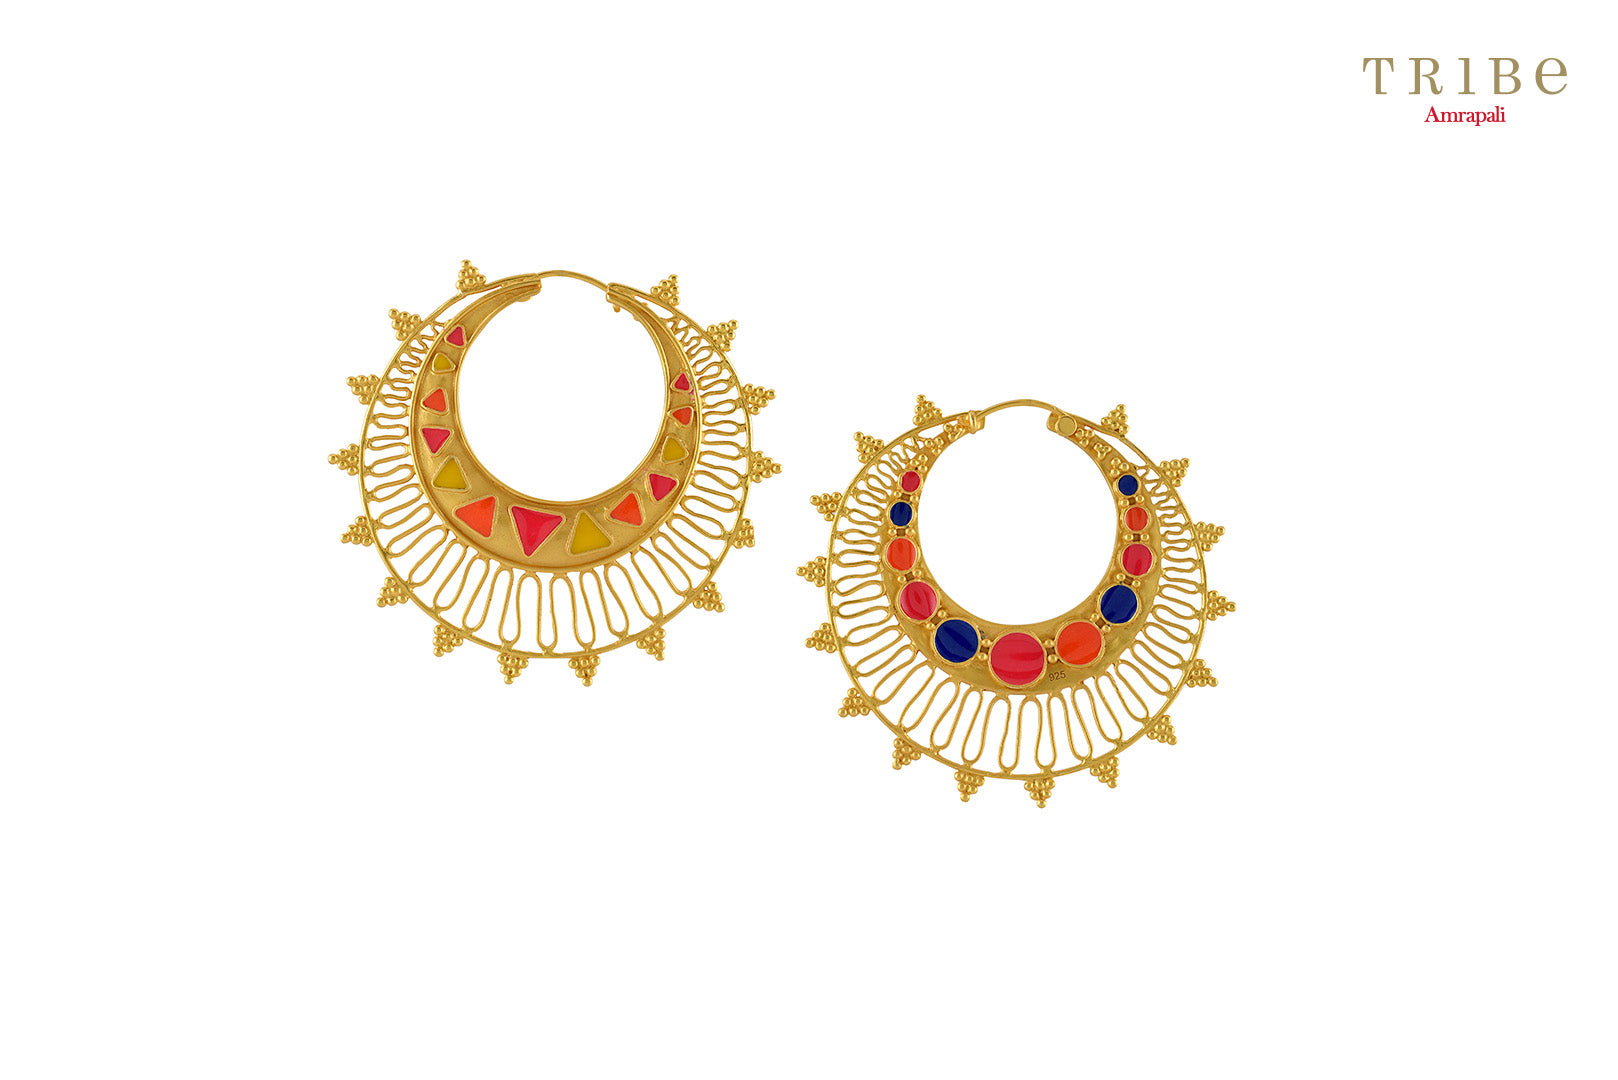 Tribe Amrapali silver gold plated multi colored zig zag rawa hoop earrings buy online in USA.  If you are looking for Indian silver gold plated jewellery in USA, then Pure Elegance clothing store is your one stop solution, shop now.-full view